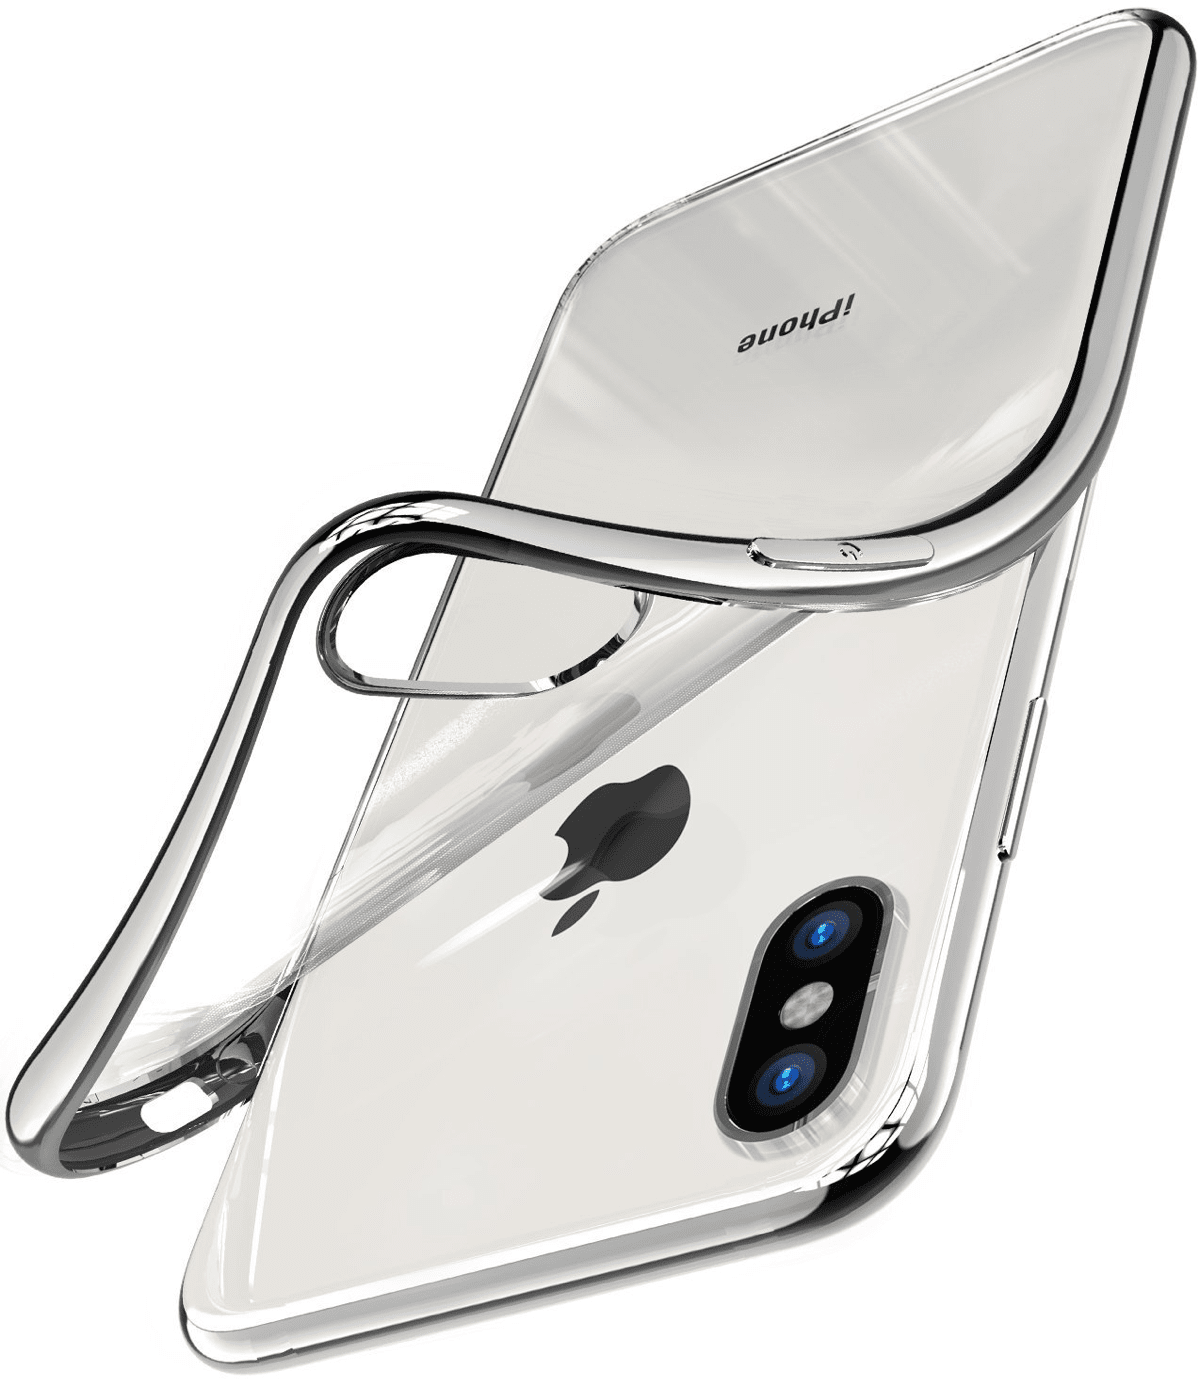 Iphone X Clear Case With Design